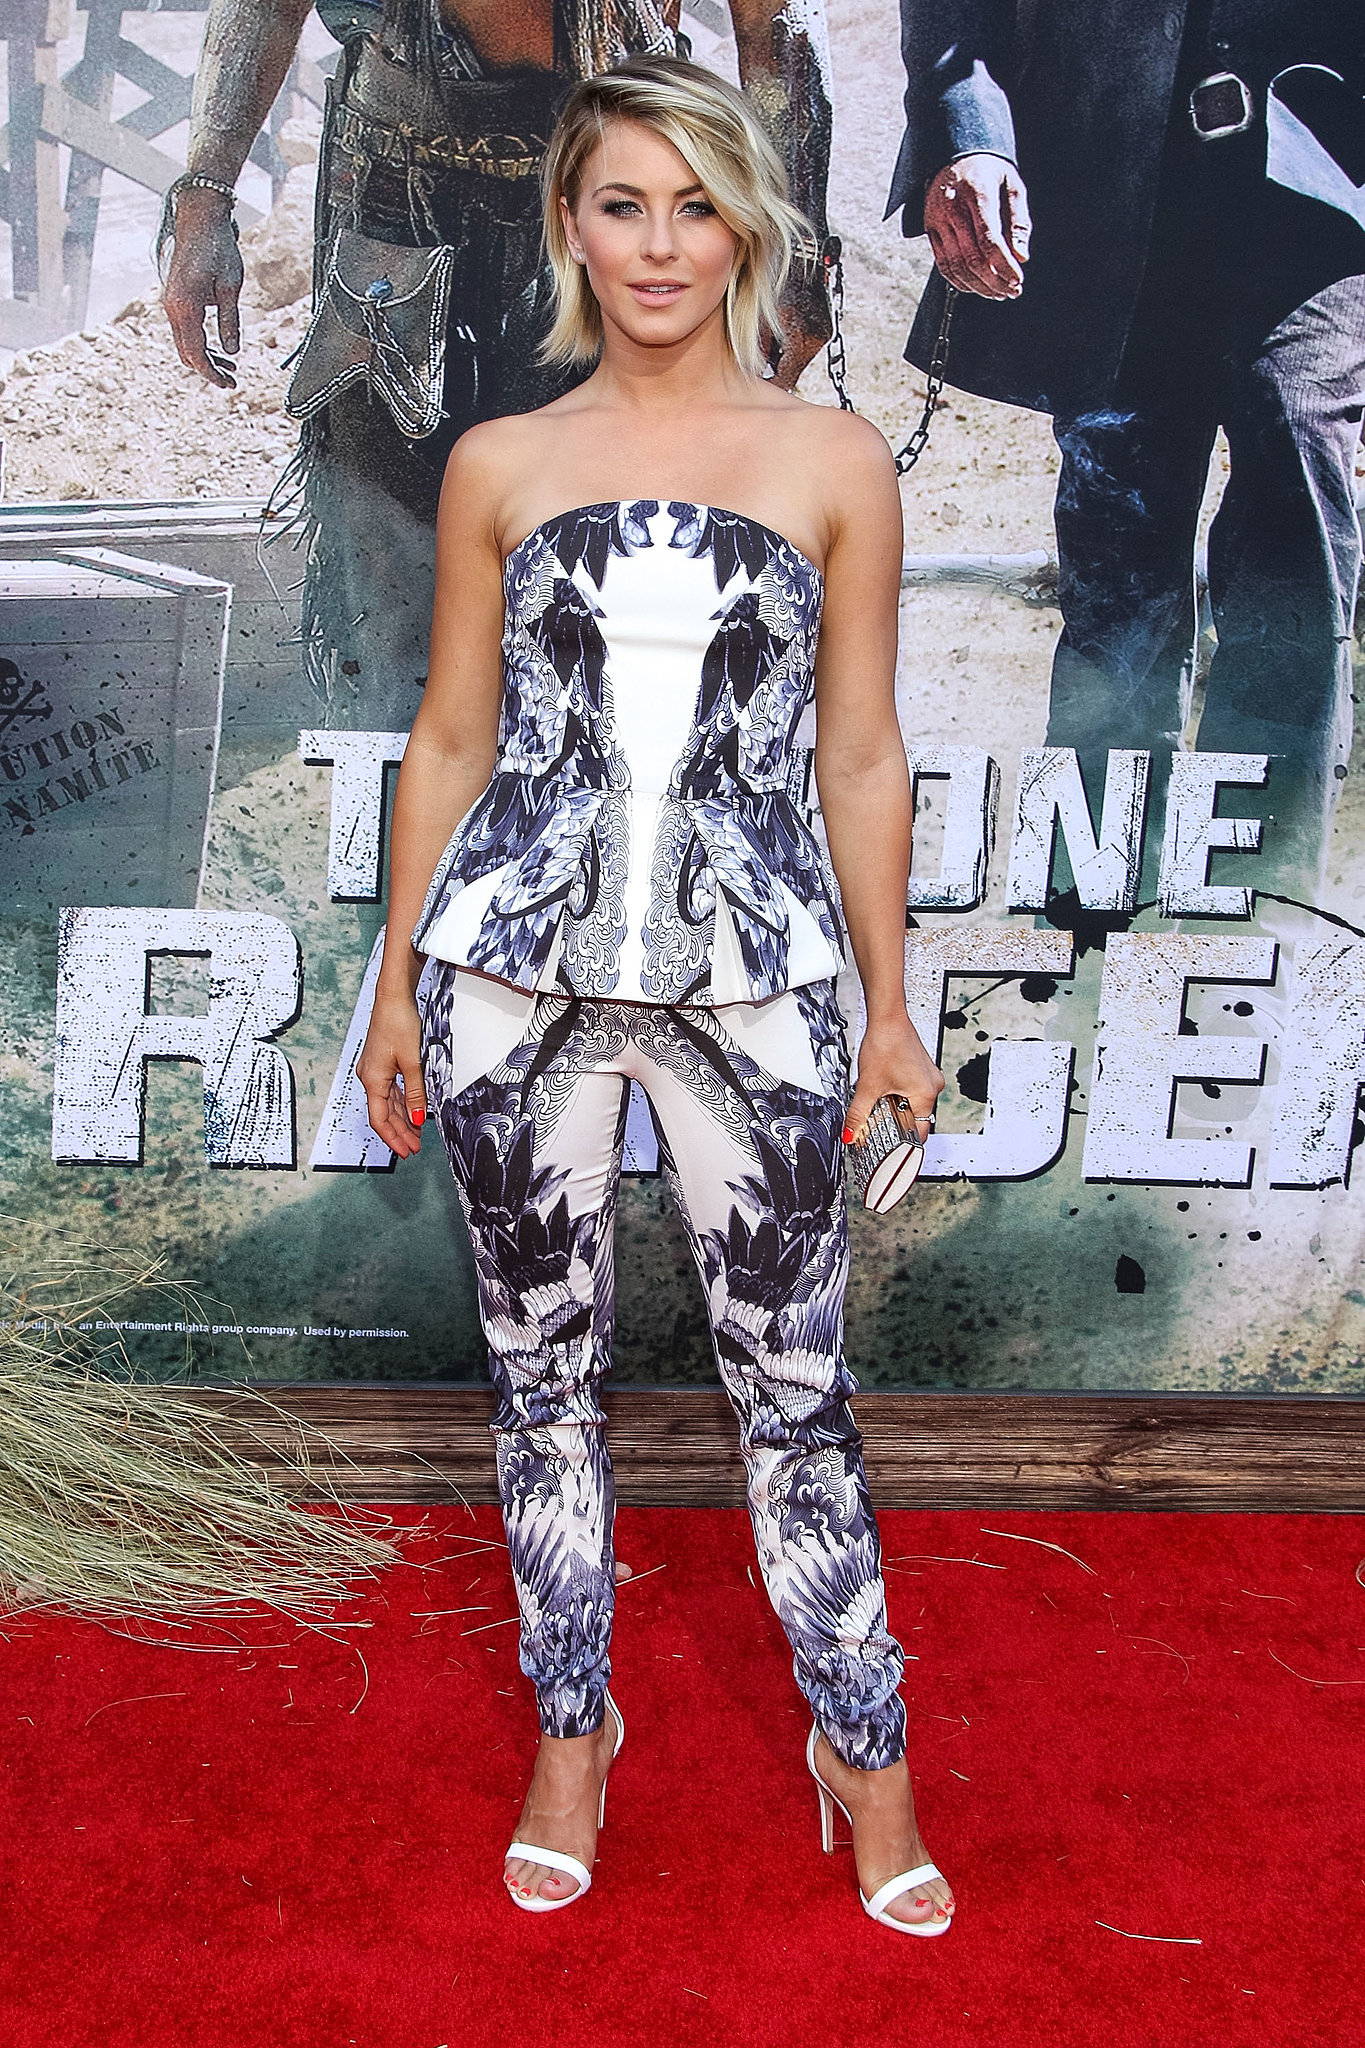 Julianne Hough put her bold prints on display in a strapless peplum top and matching trousers at The Lone Ranger's premiere in Anaheim, CA.